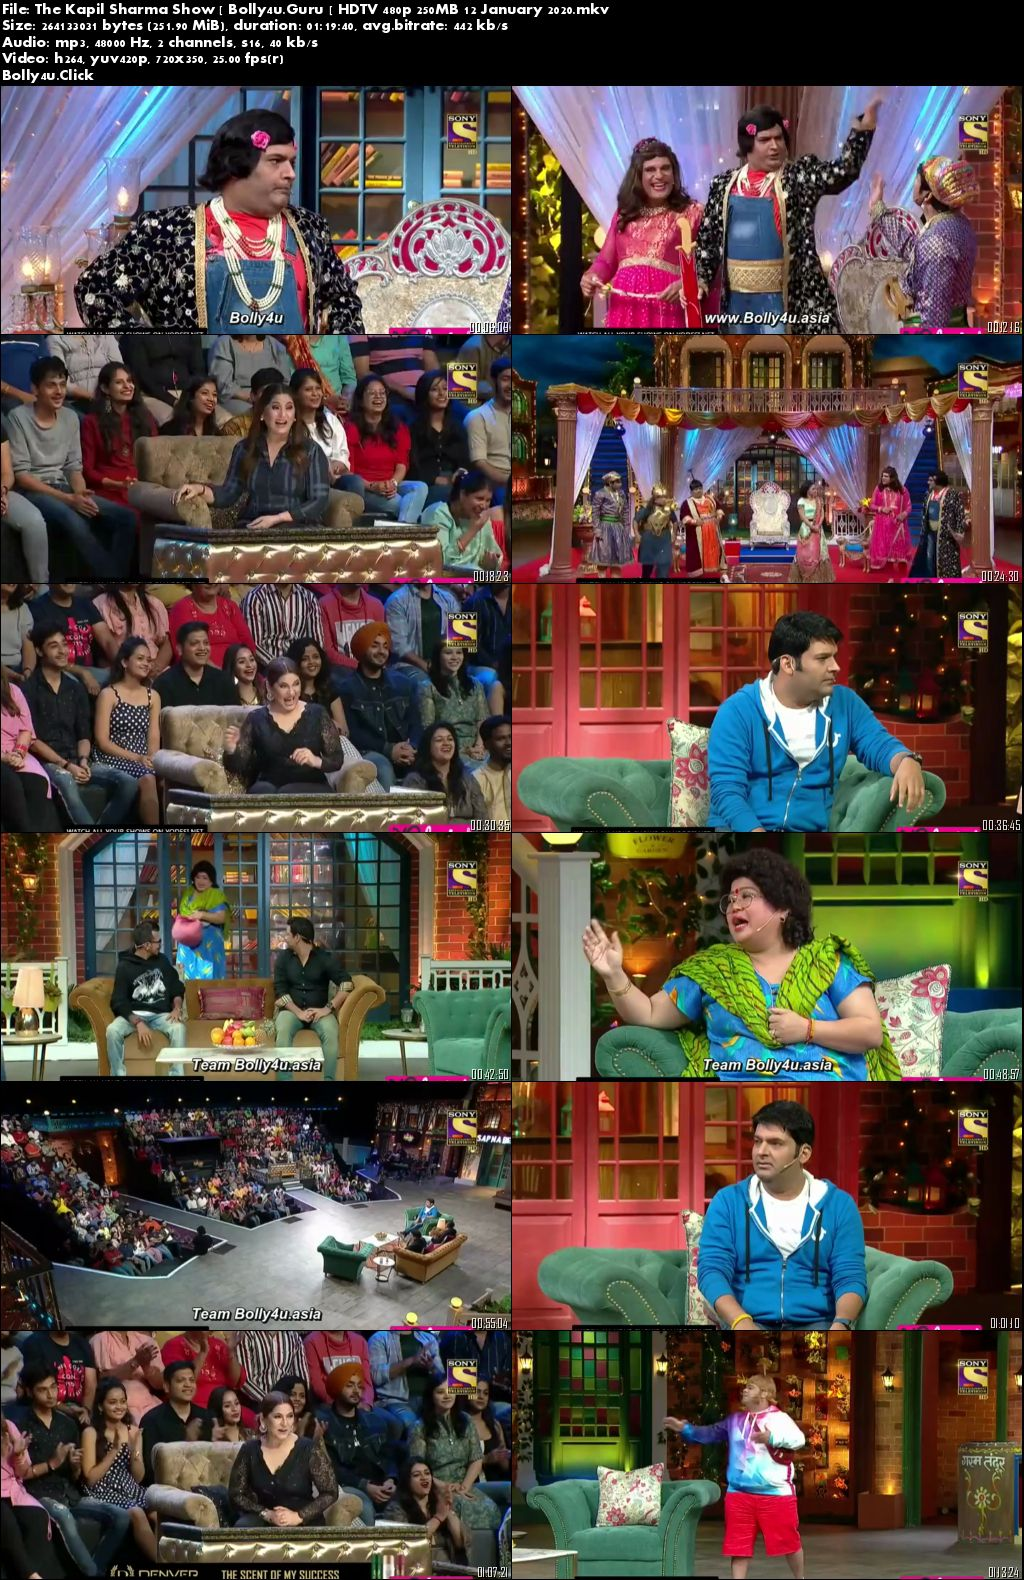 The Kapil Sharma Show HDTV 480p 250MB 12 January 2020 download